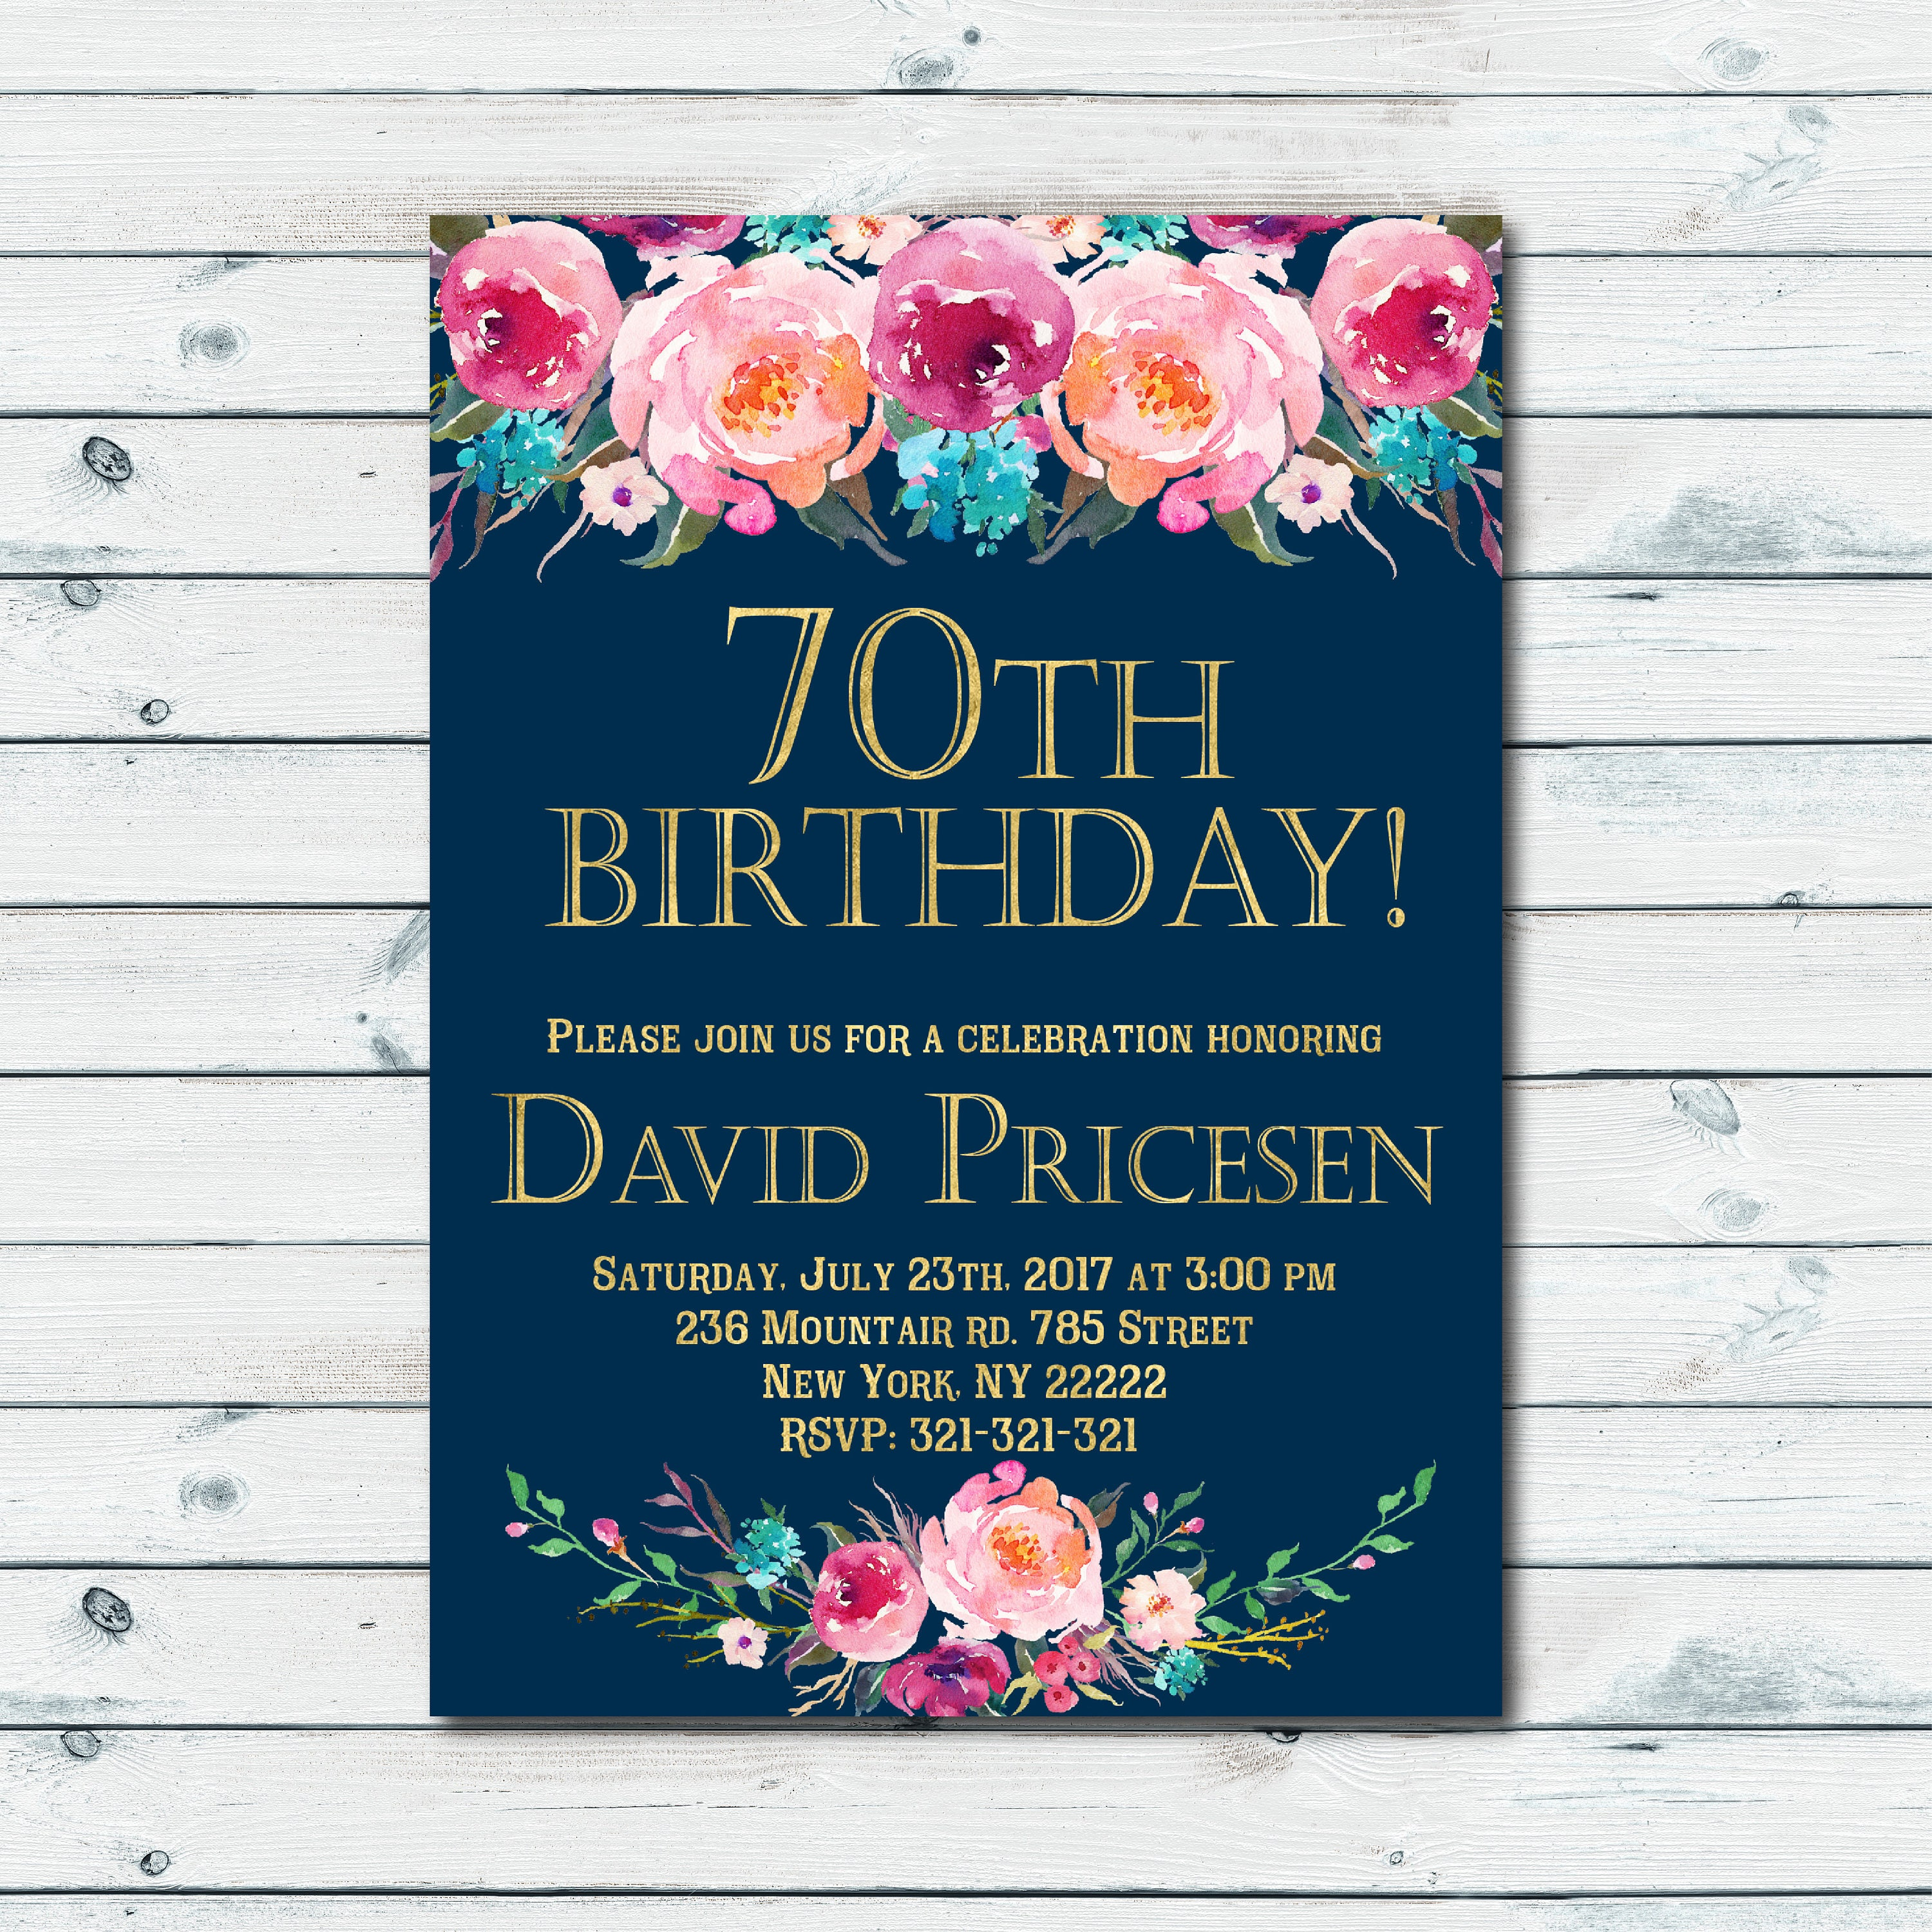 70th Birthday Invitation Women Birthday Invitation Floral Birthday